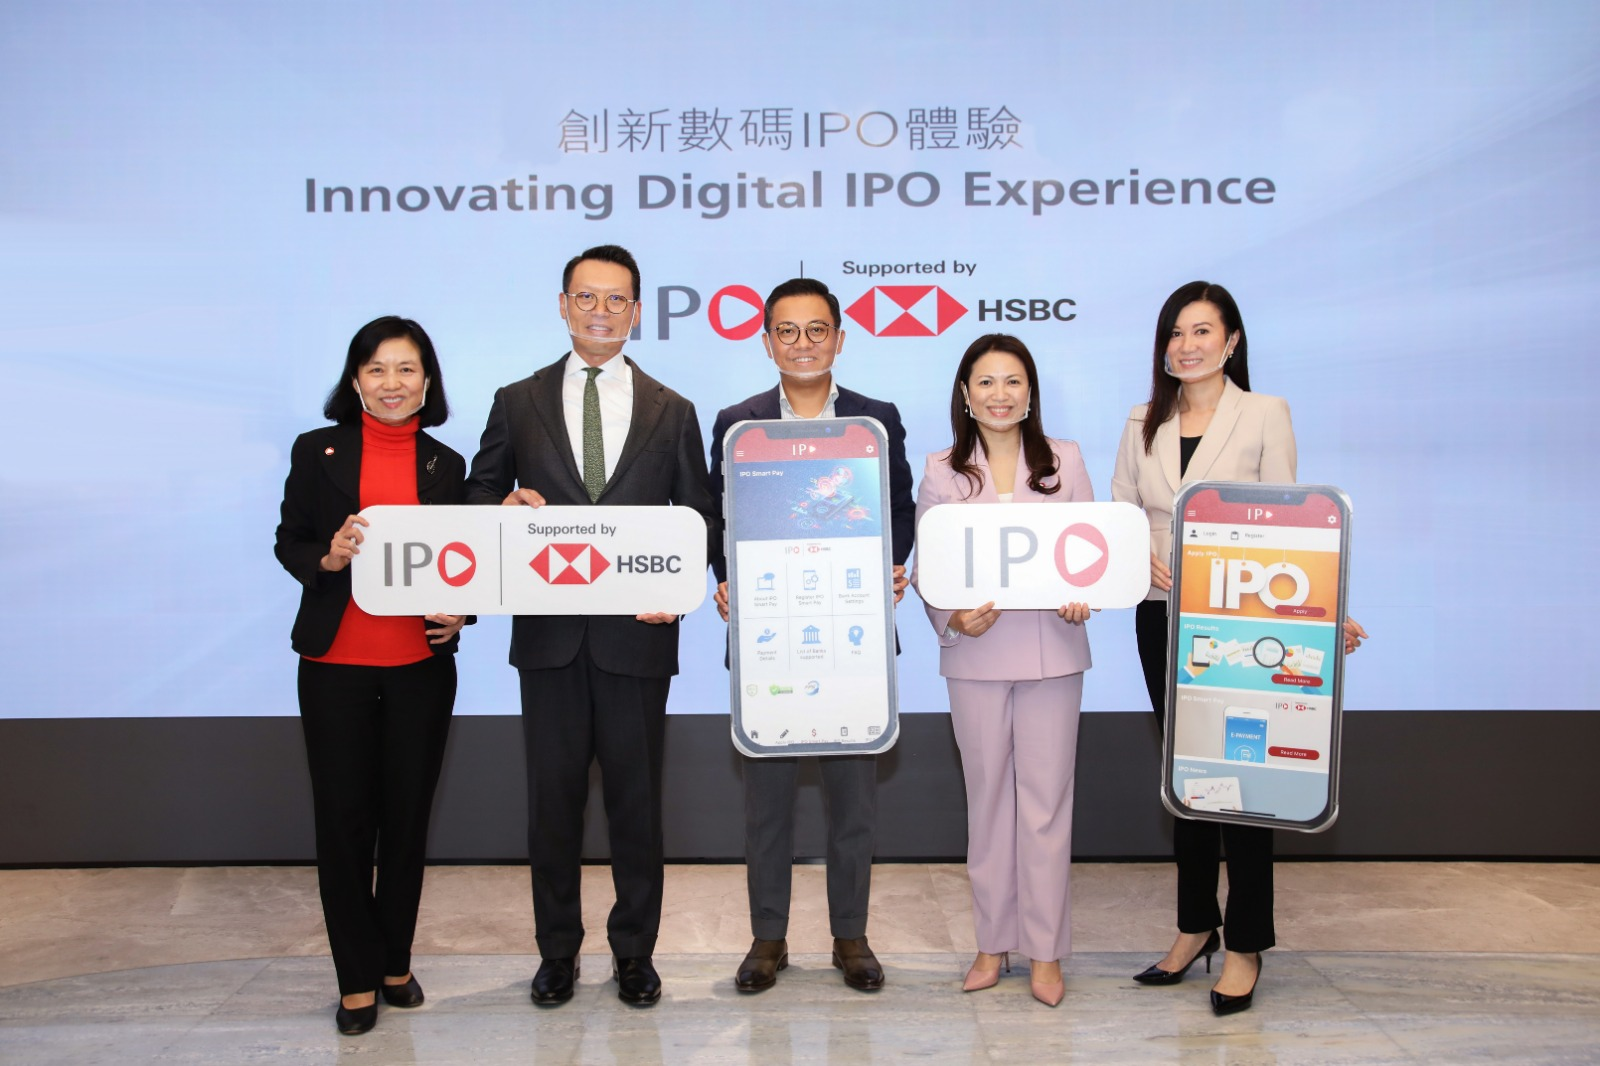 Tricor Launches IPO Smart Pay An Innovating Digital IPO Experience Sets to Benefit Investors and Issuers Alike